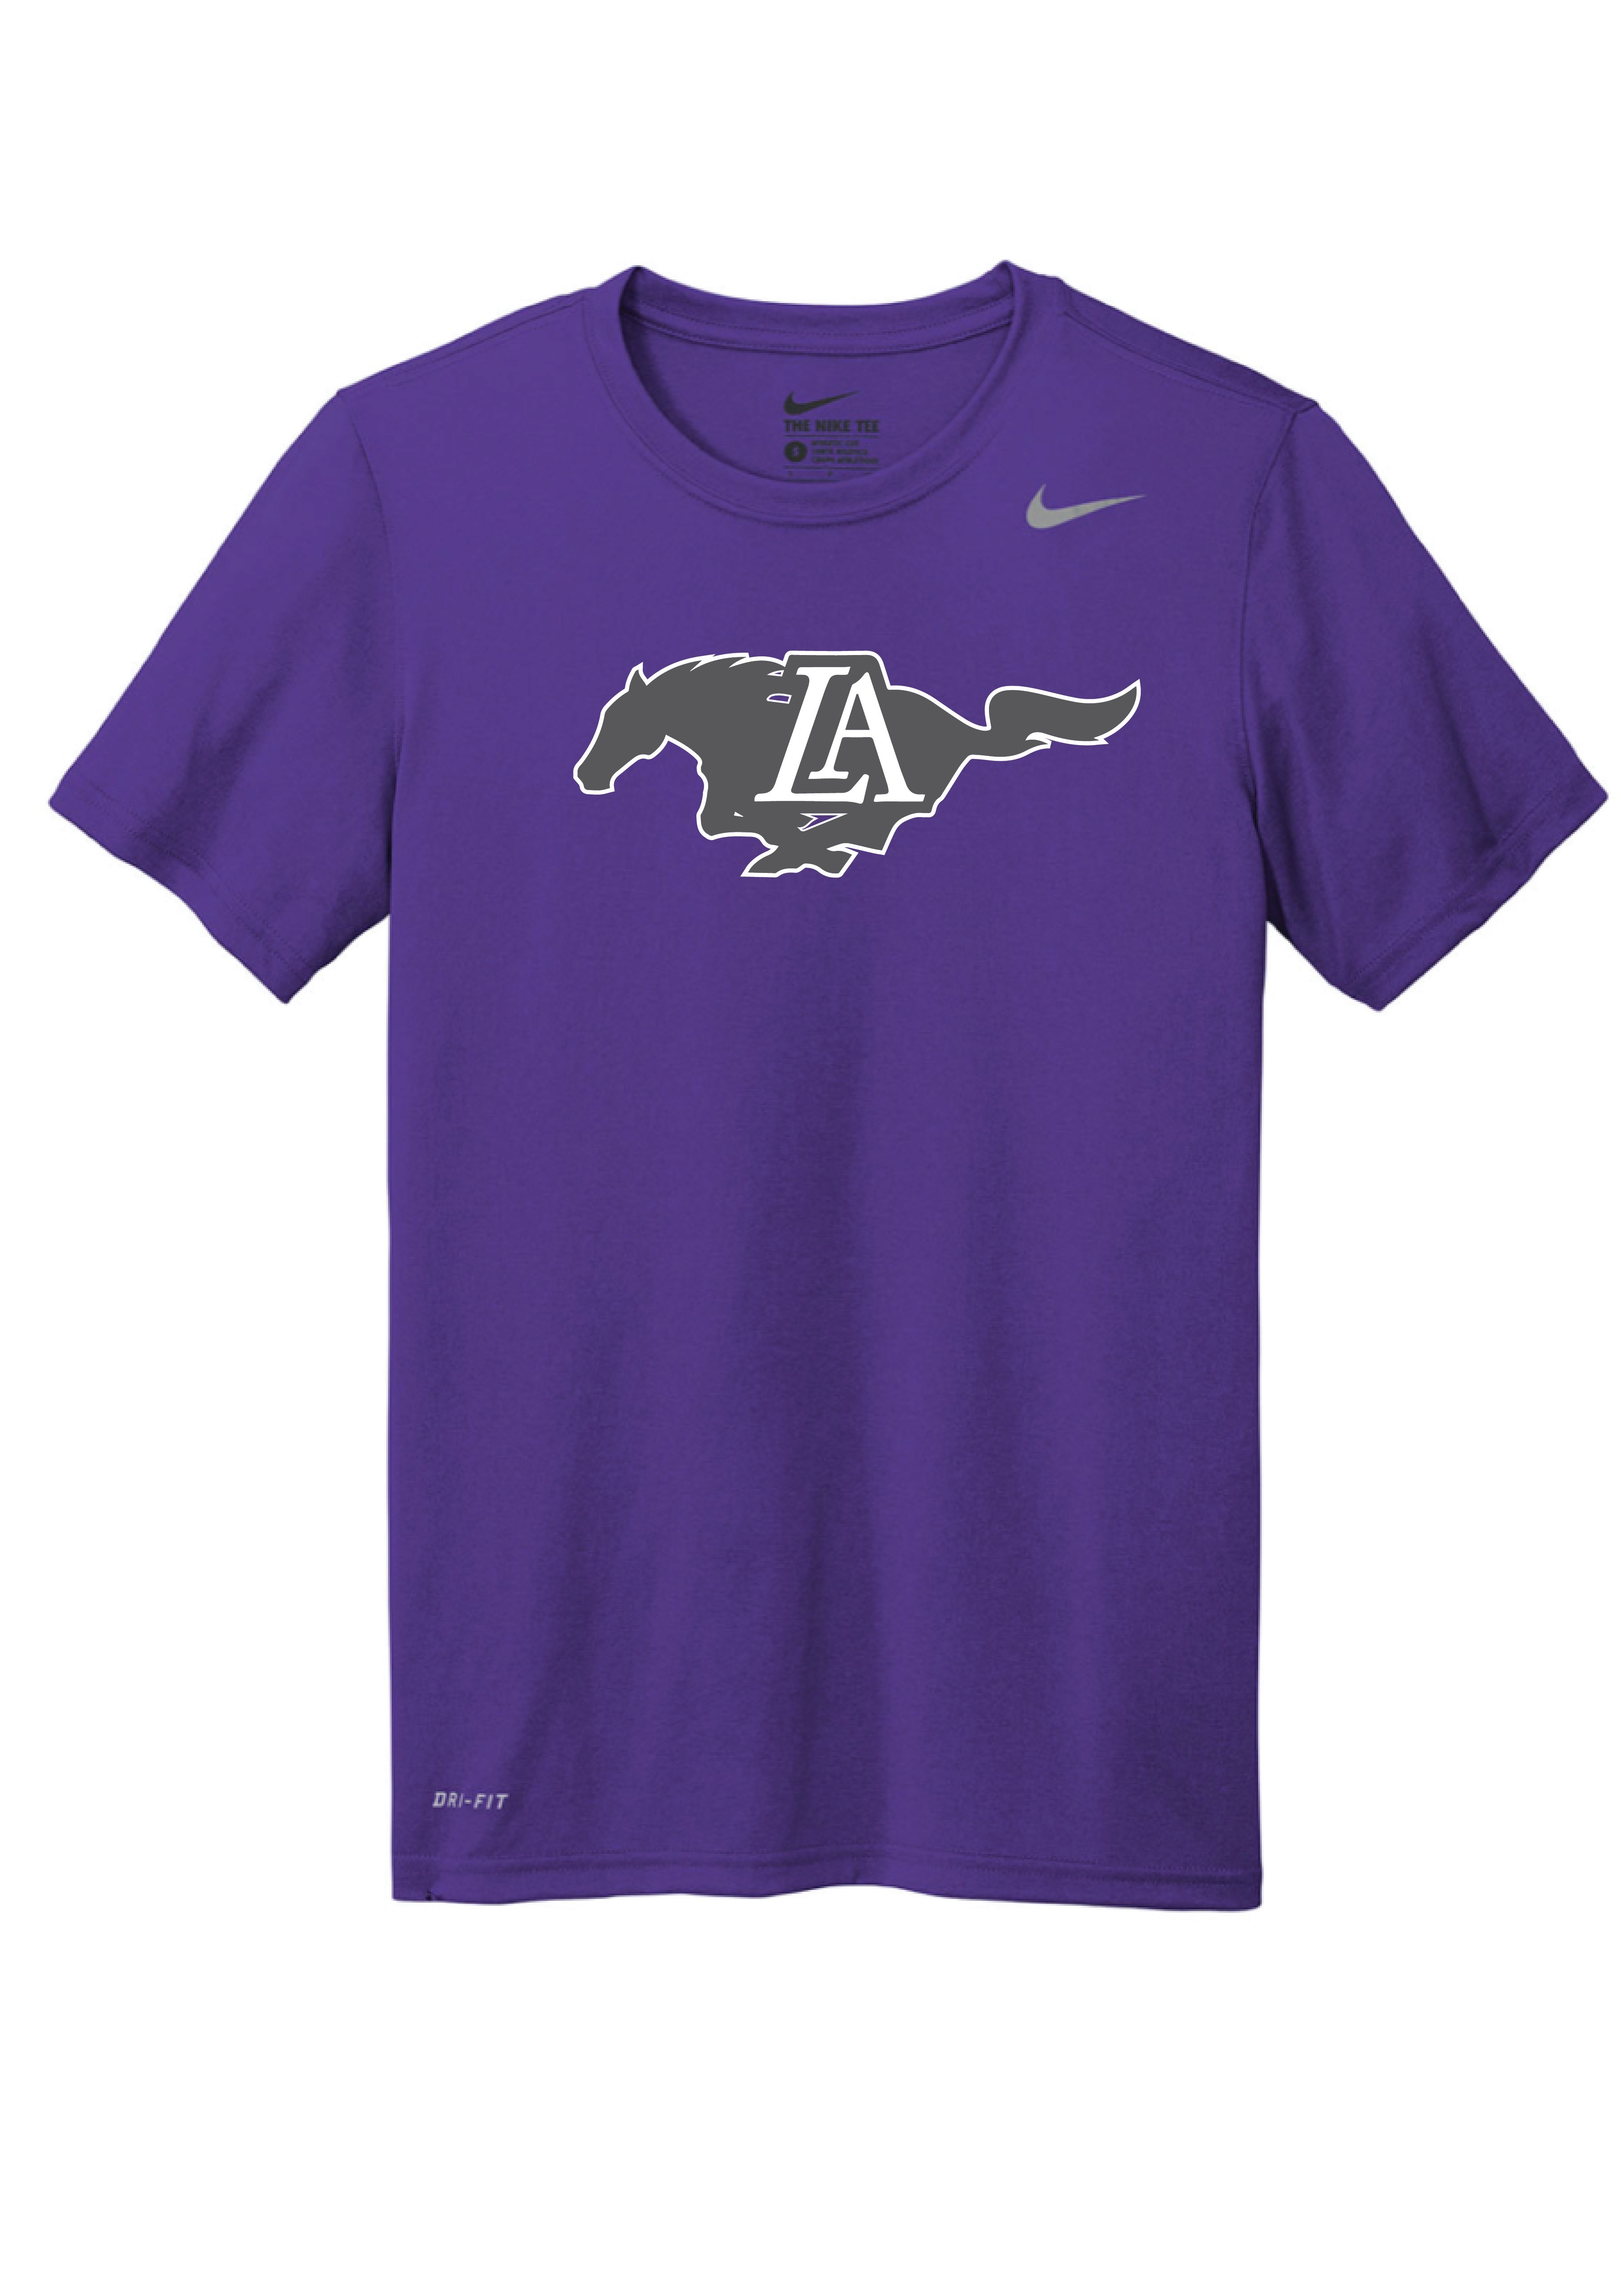 Nike Dri-Fit T-Shirt  Purple